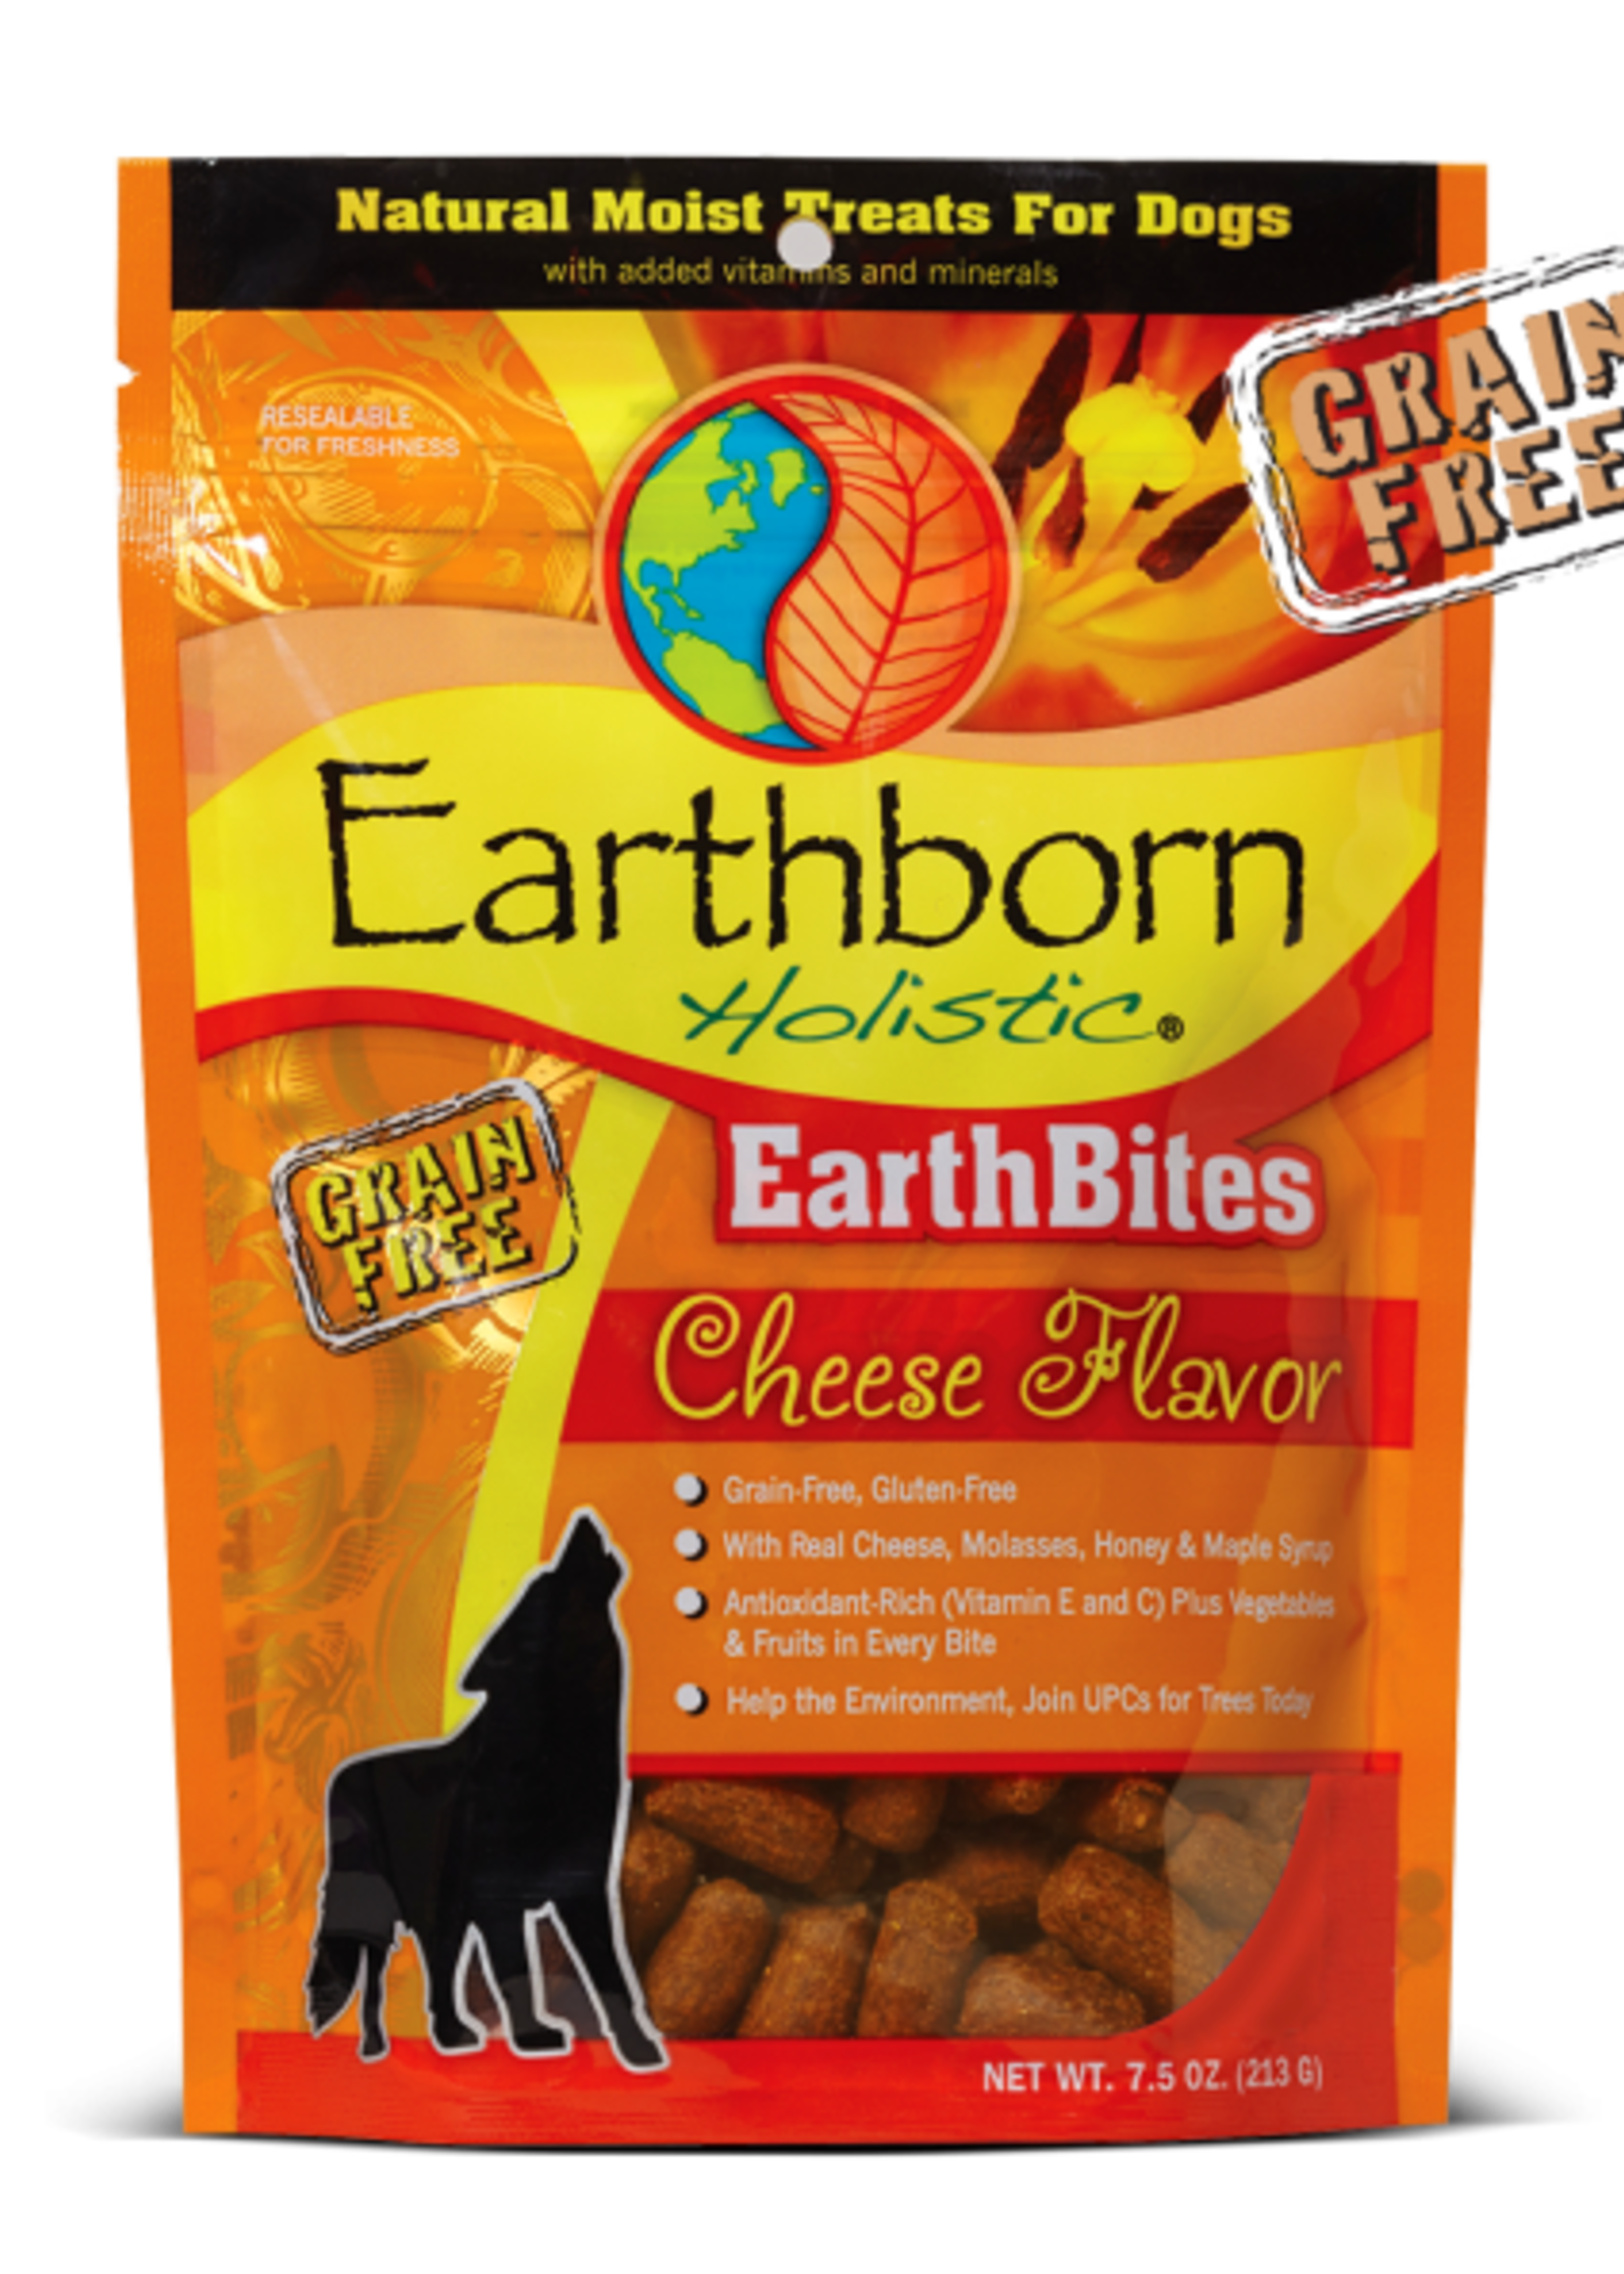 Earthborn by Midwestern Pet Earthborn Dog Treat EarthBites Cheese Flavor 7.5 oz